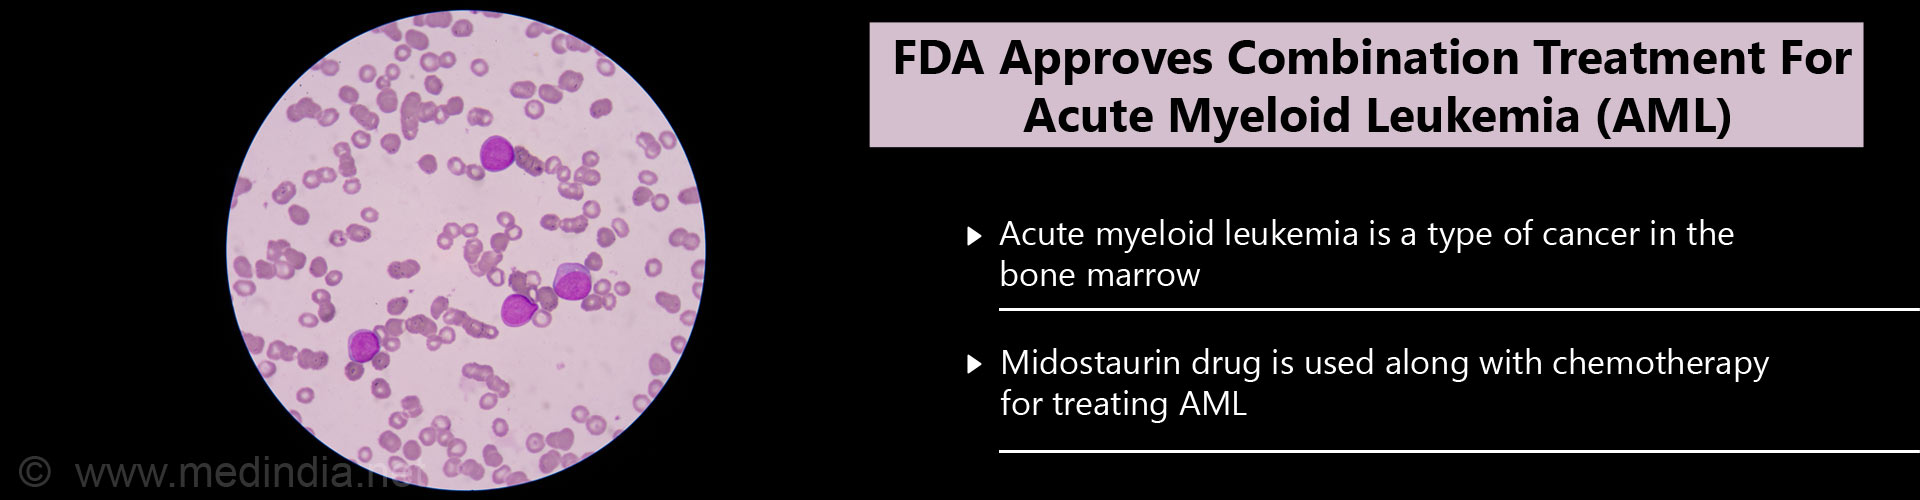 Midostaurin and Chemotherapy Combination Approved by FDA for Acute Myeloid Leukemia Treatment